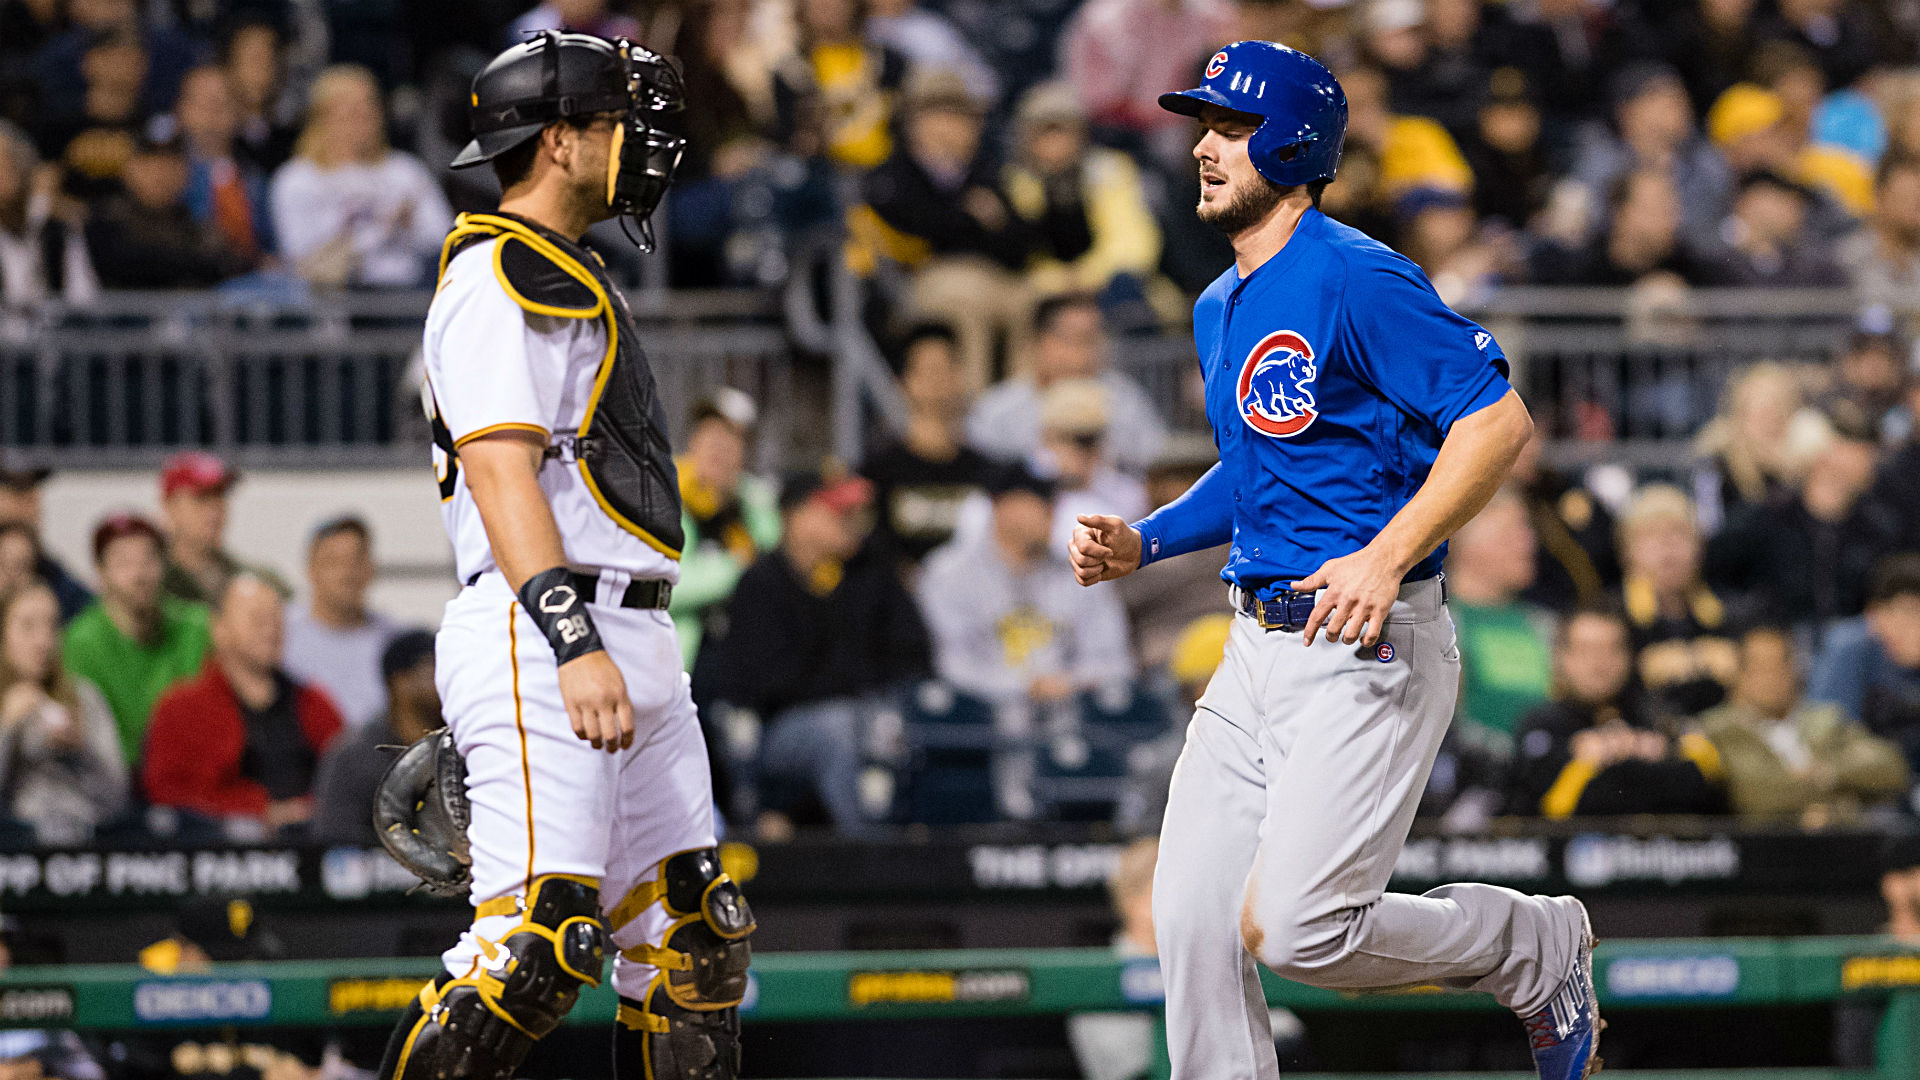 Pirates-and-cubs-game-gets-heated_1du88ky85tybg1cfwmqinzeqzg